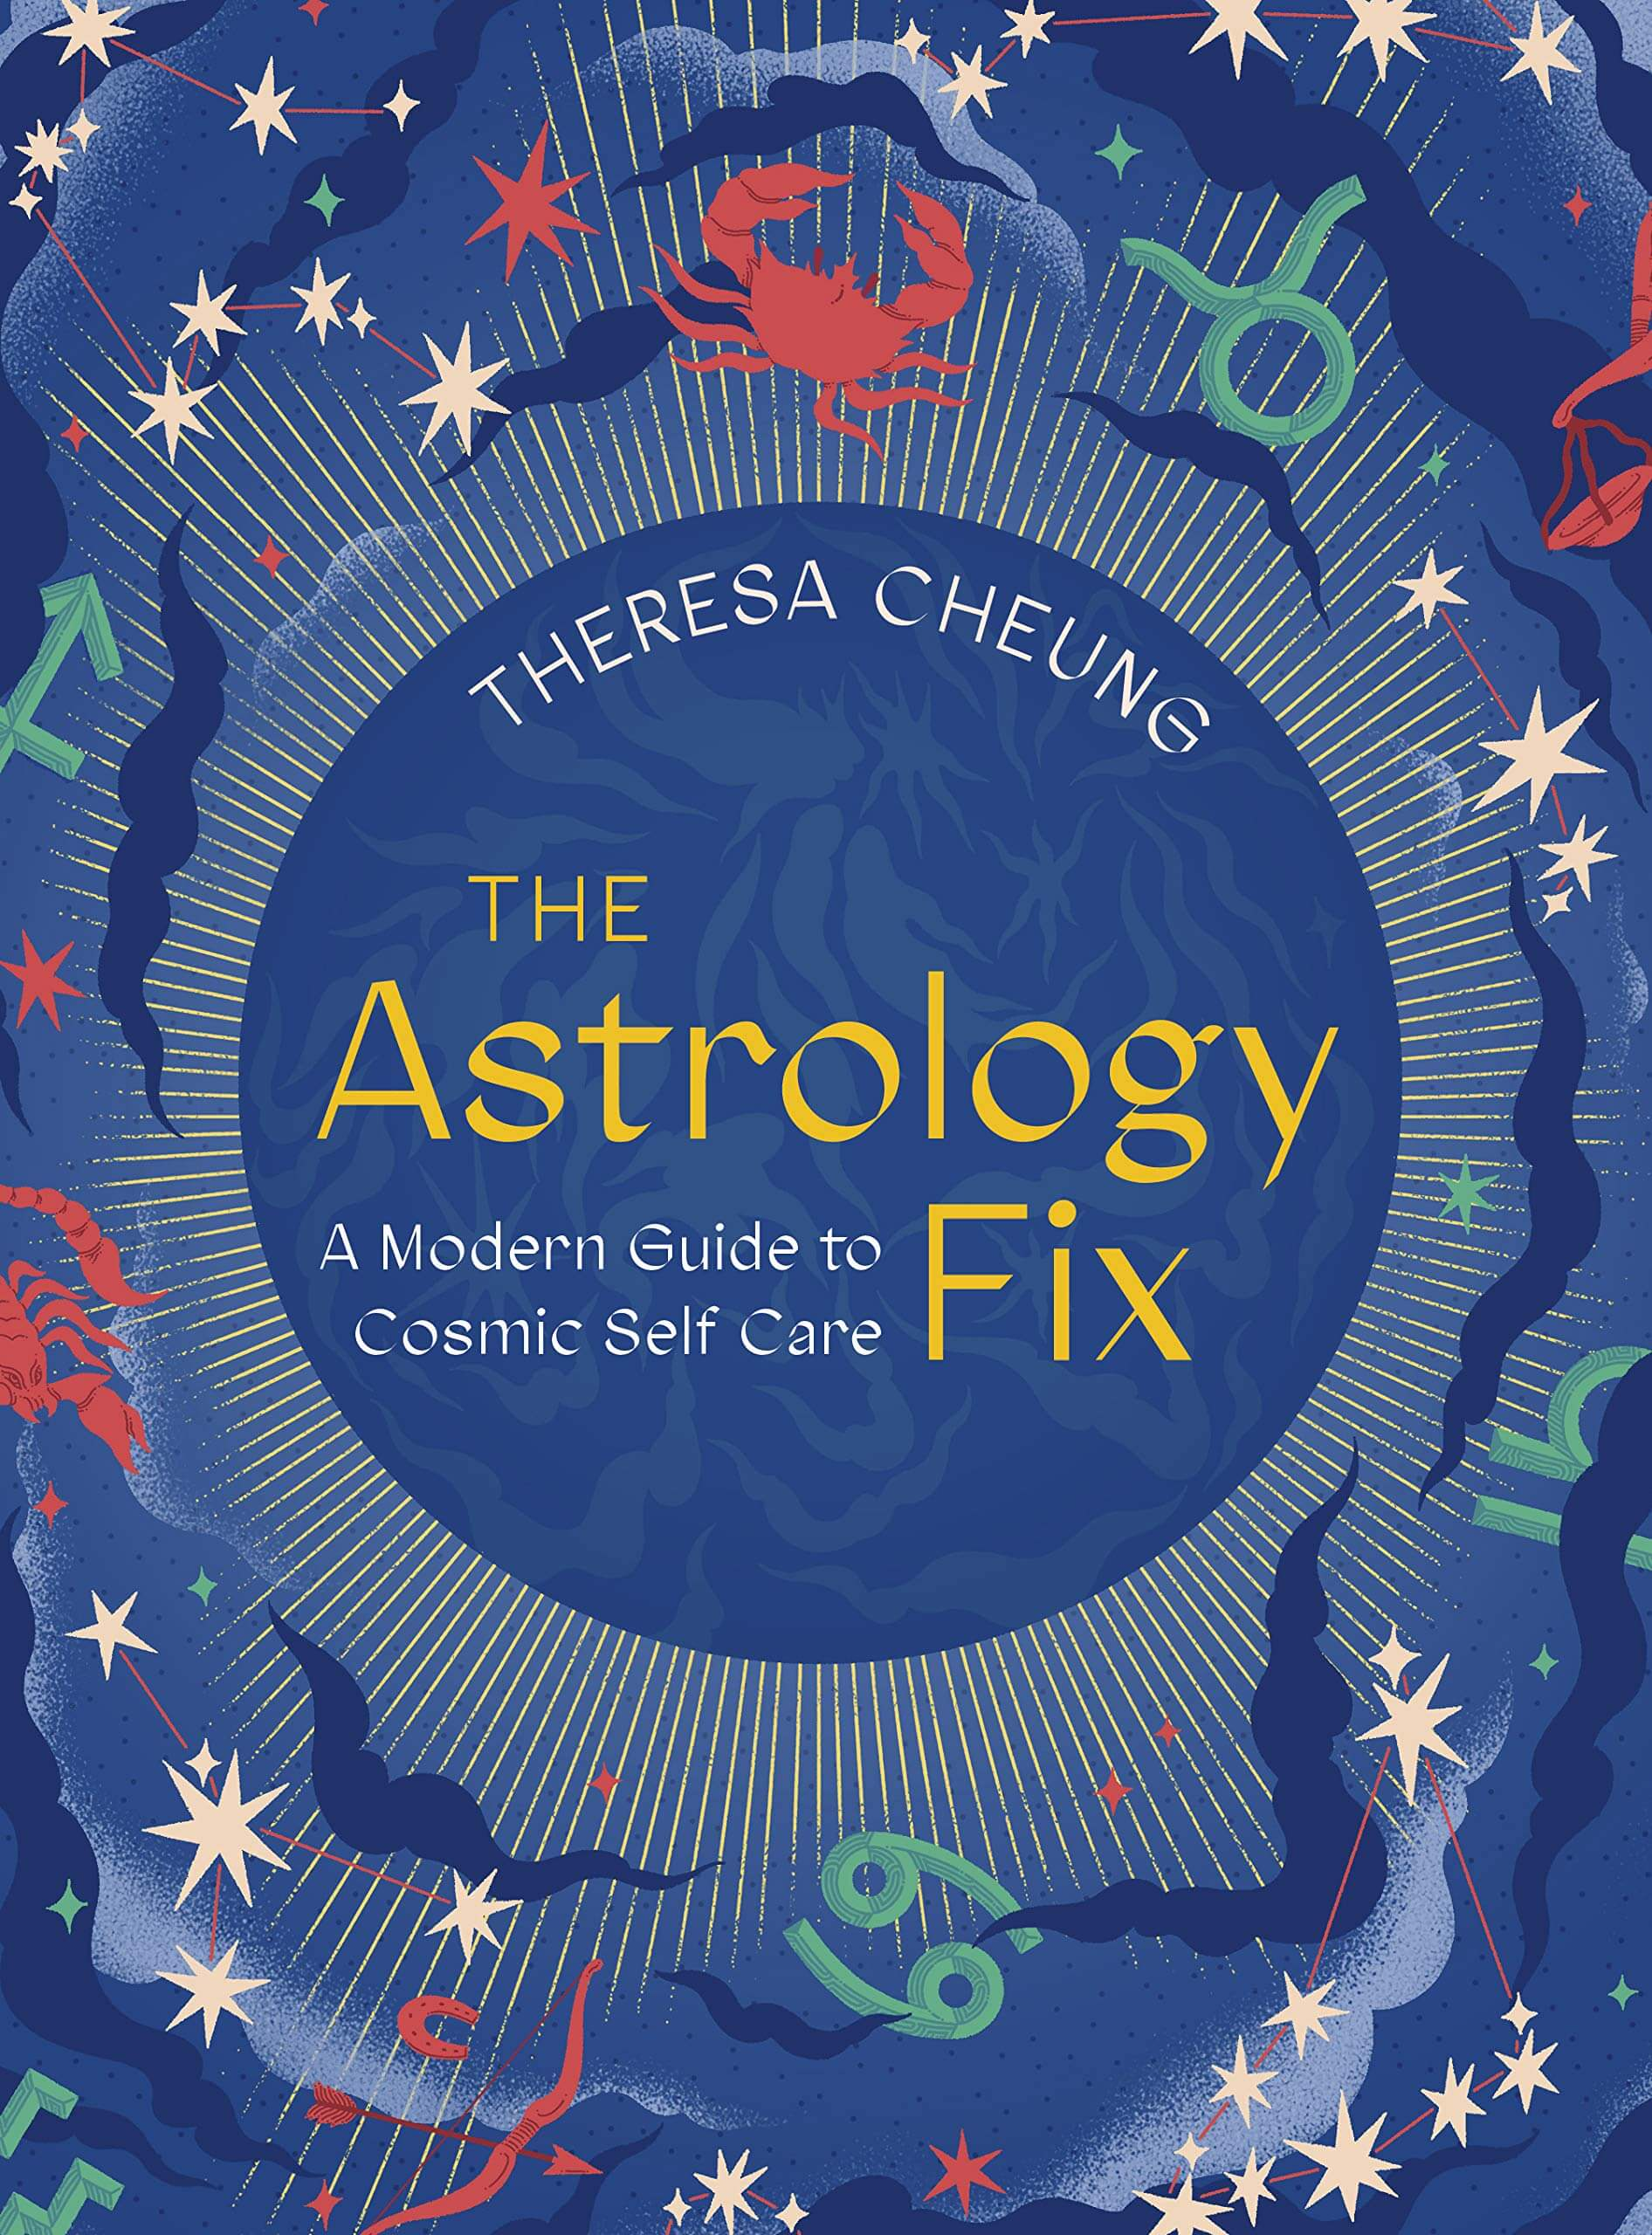 The Astrology Fix: A Modern Guide to Cosmic Self Care - Theresa Cheung